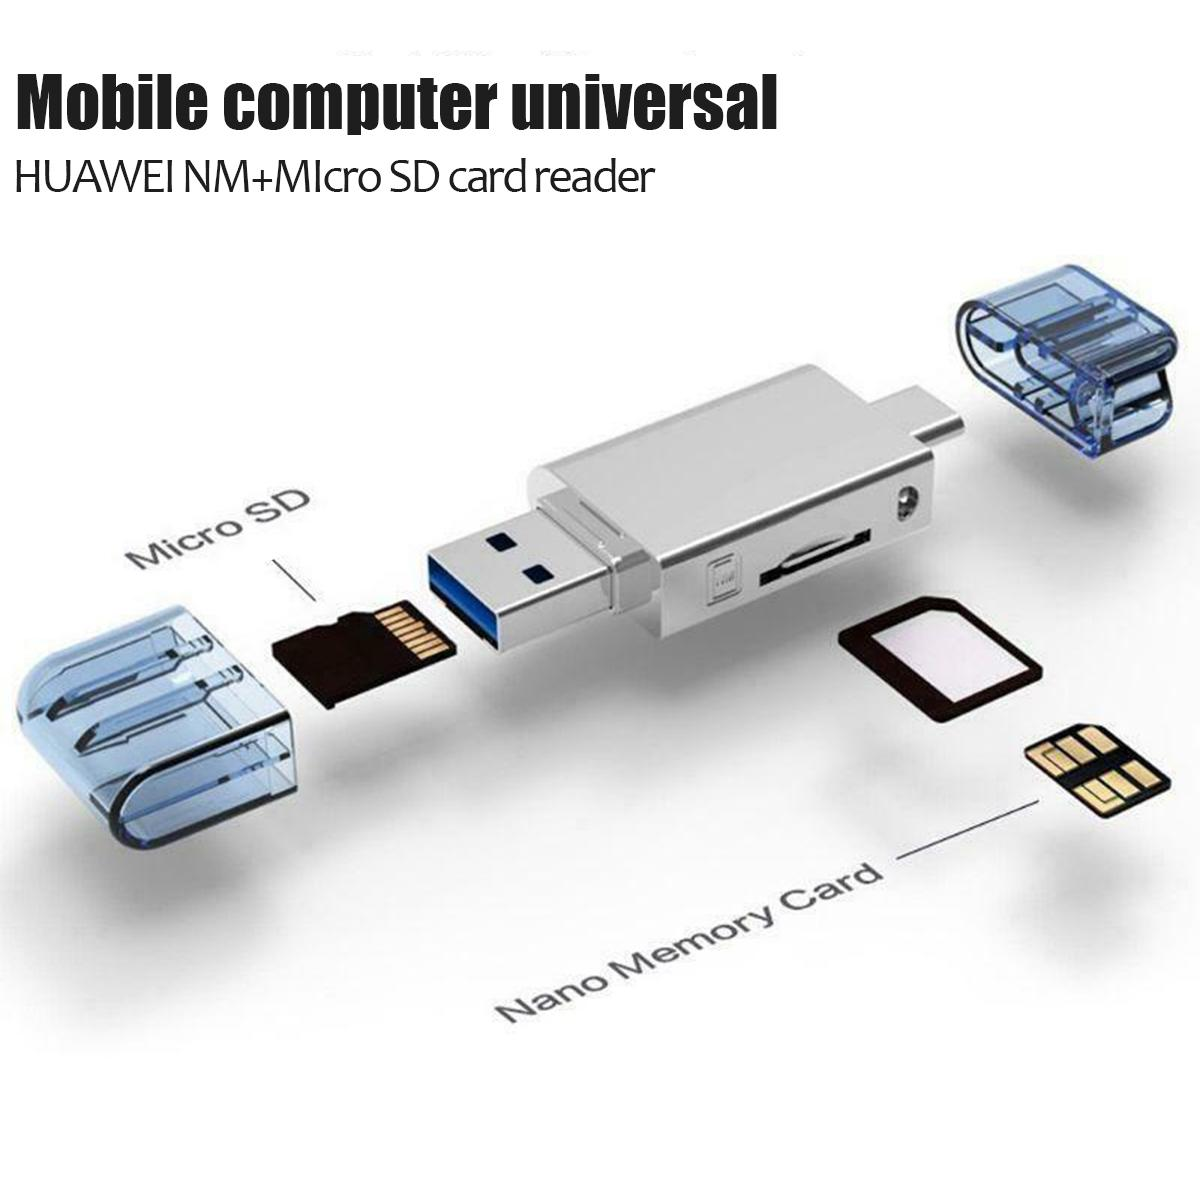 2 In 1 Type-C USB3.0 To Micro-SD/NM PC Use Card Reader For Huawei Mate20/P30 Pro High-speed Memory Aluminum Alloy